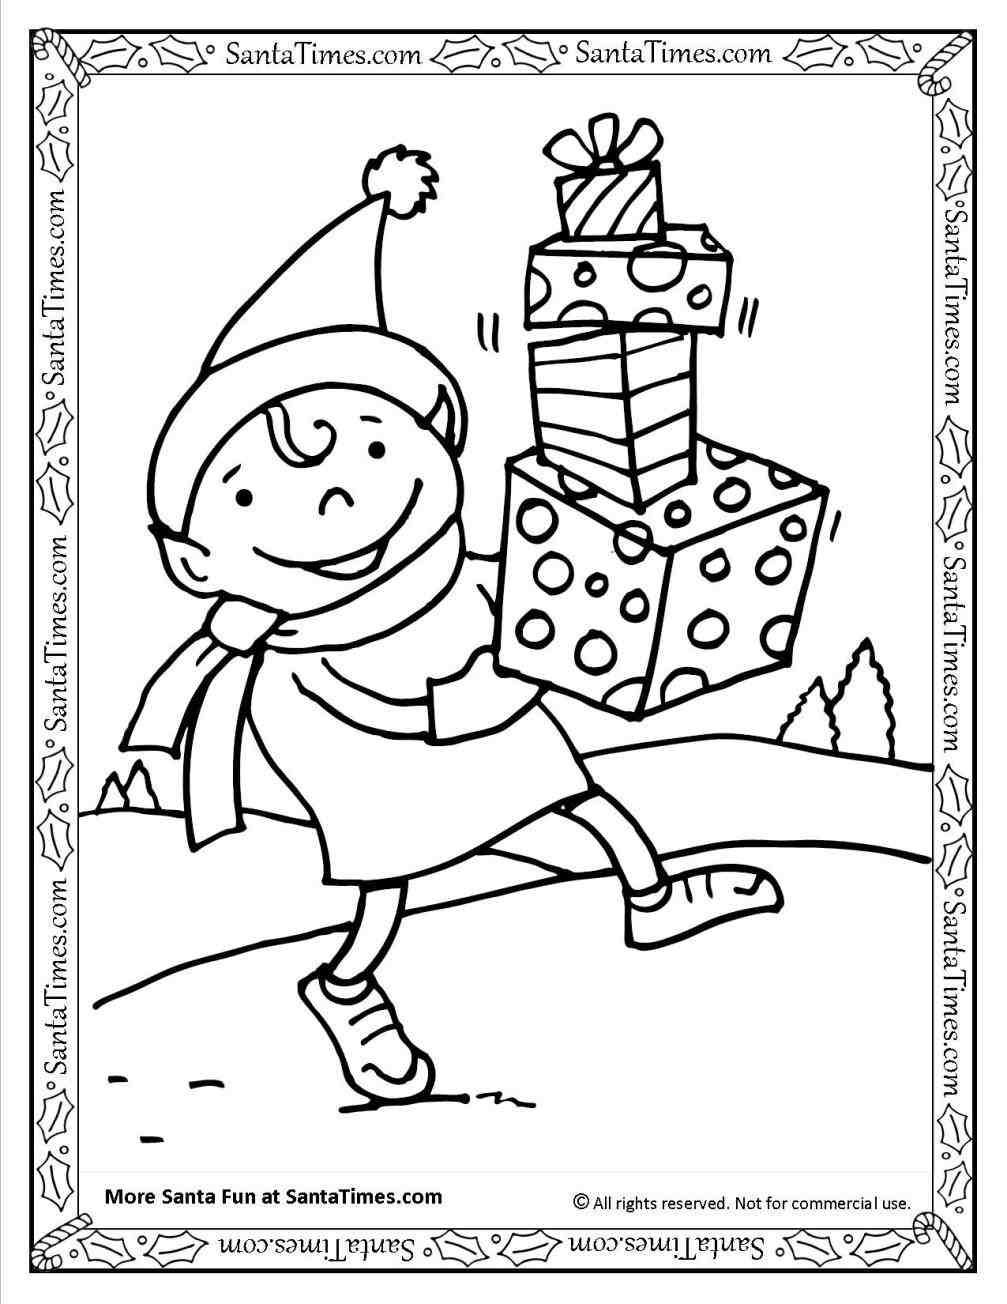 Christmas Elves Coloring Pages Printable Xmast Site Printable Christmas Coloring Pages Printable Coloring Book Geometric Coloring Pages